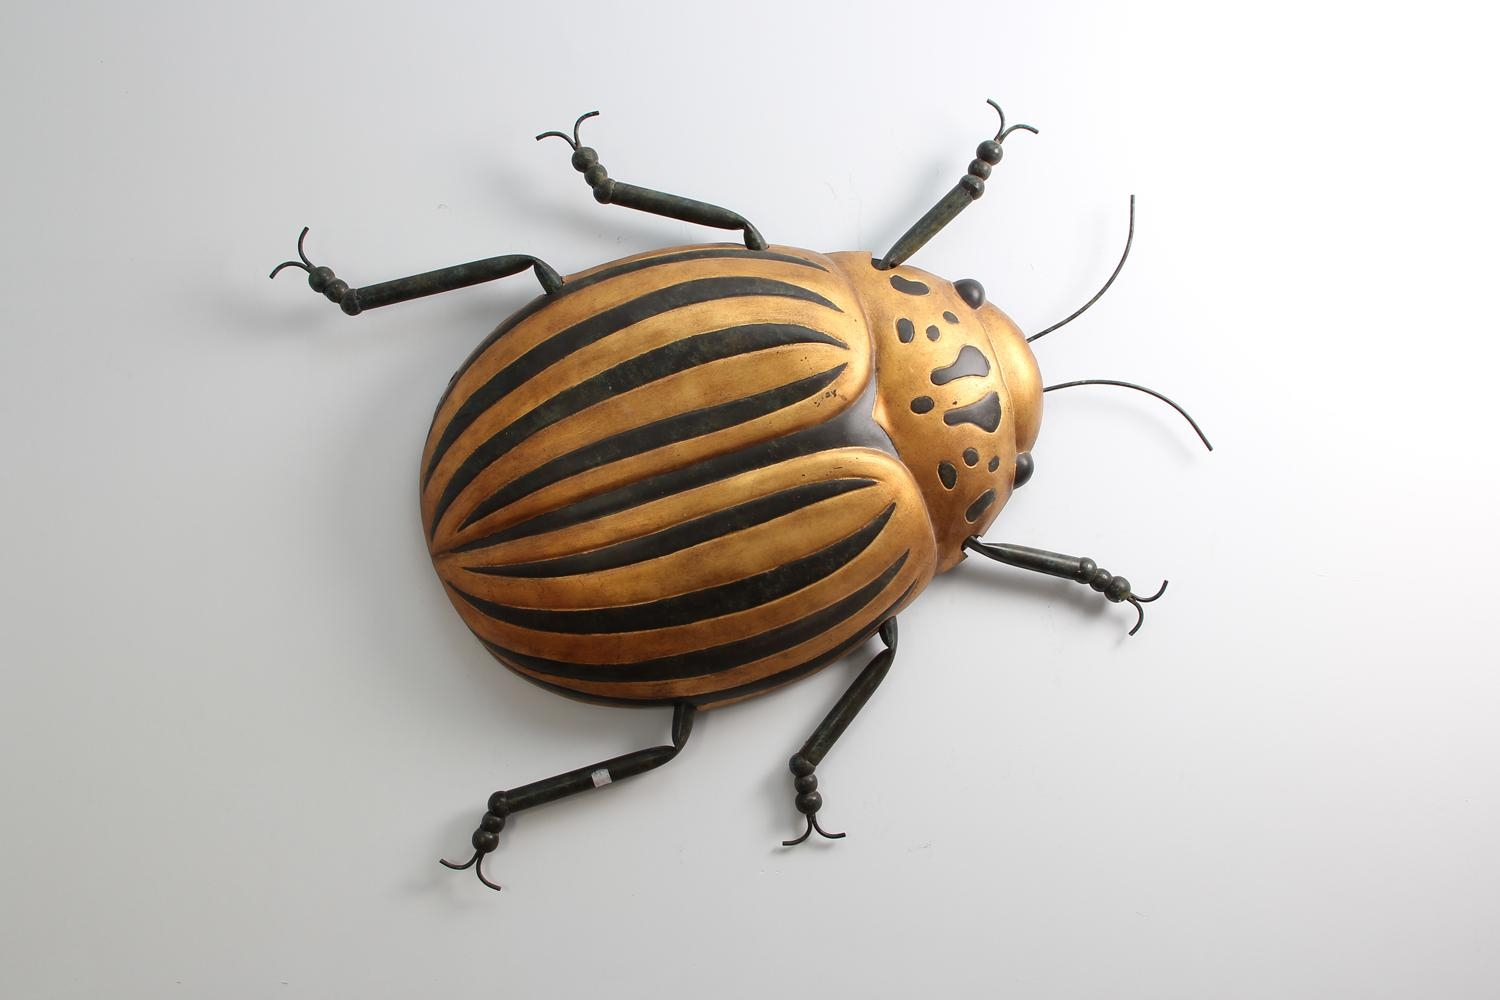 Beetle Bug Wall Art | Forwood Design With Regard To Insect Wall Art (Image 4 of 20)